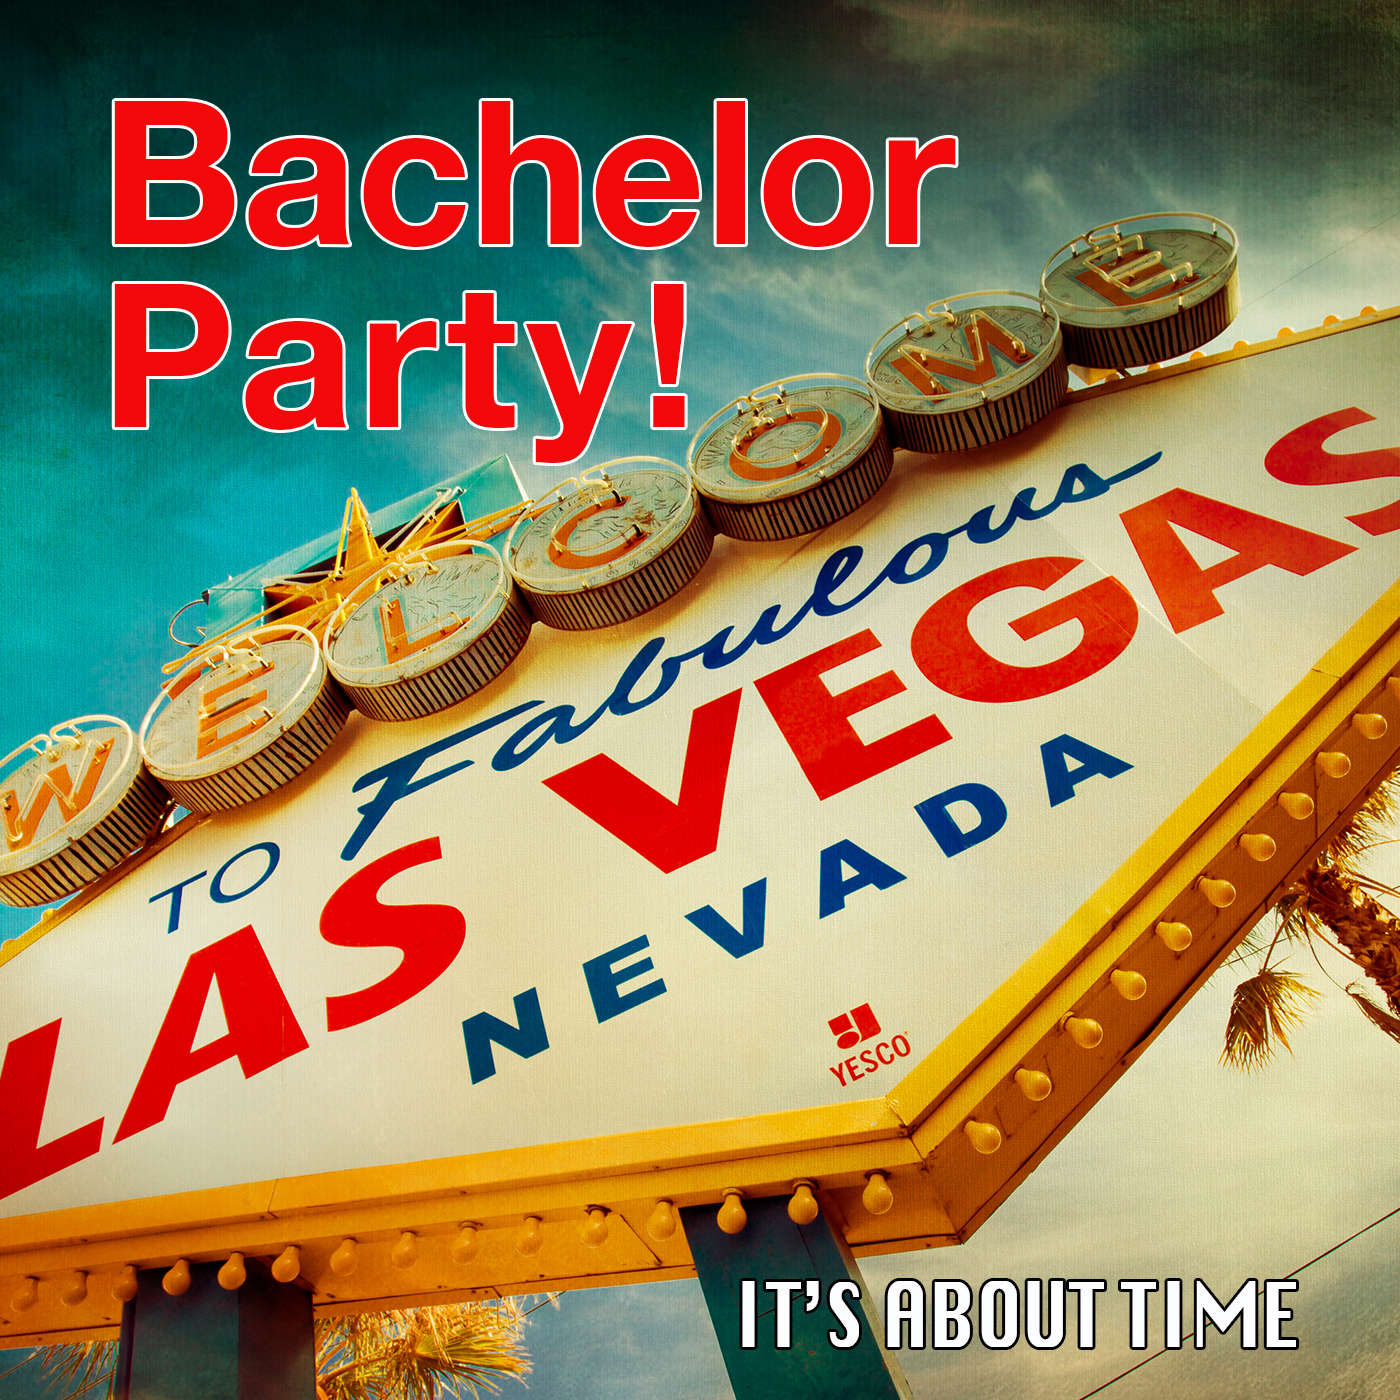 S02E12 - Bachelor Party - A classic Las Vegas celebration, time travel-style